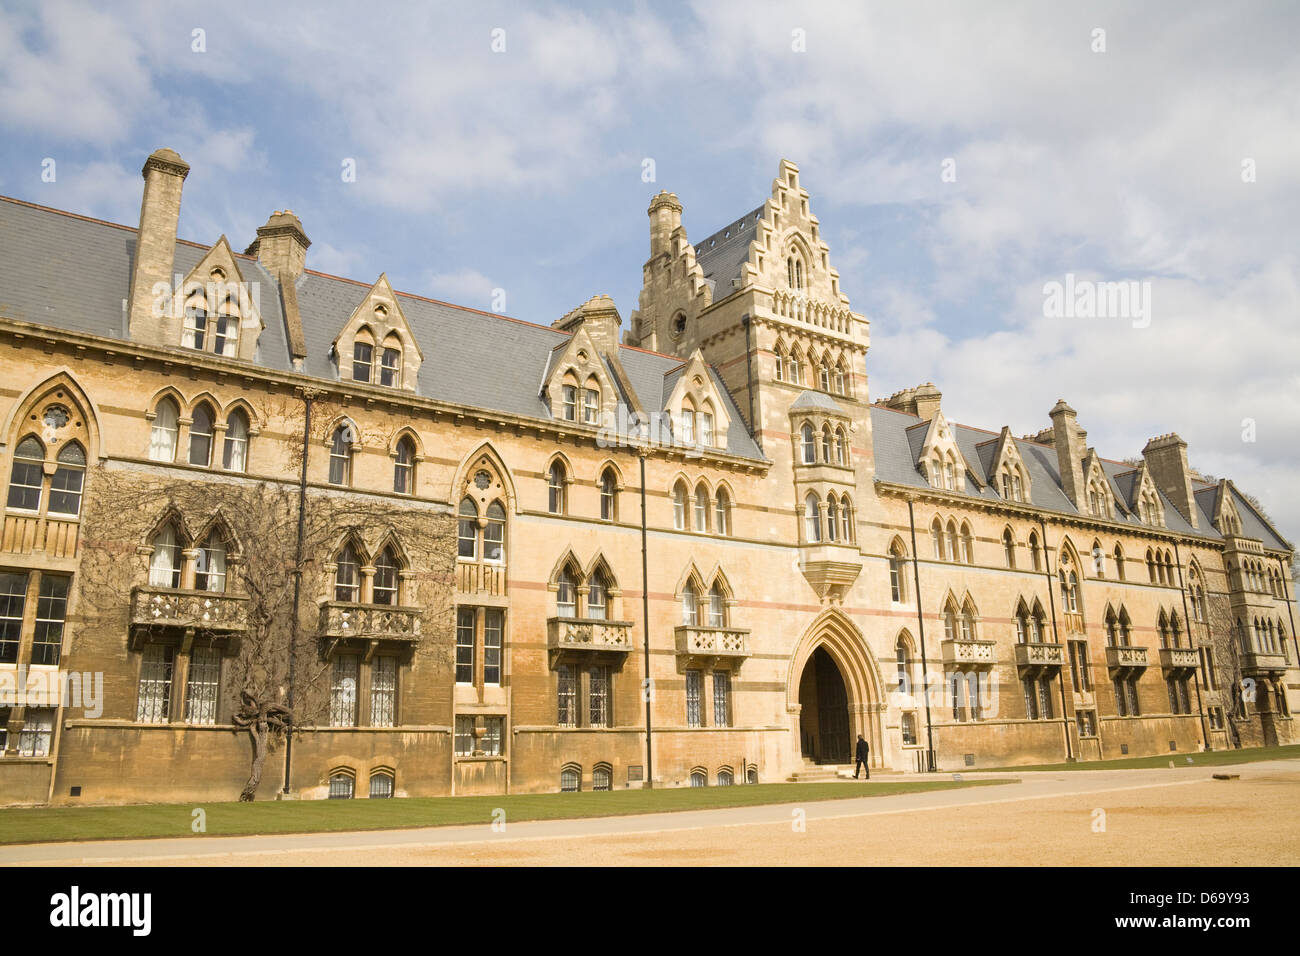 Oxford Oxfordshire Meadow Building main Meadow Gate entrance of Christ Church College and Cathedral one of the Oxford - Stock Image